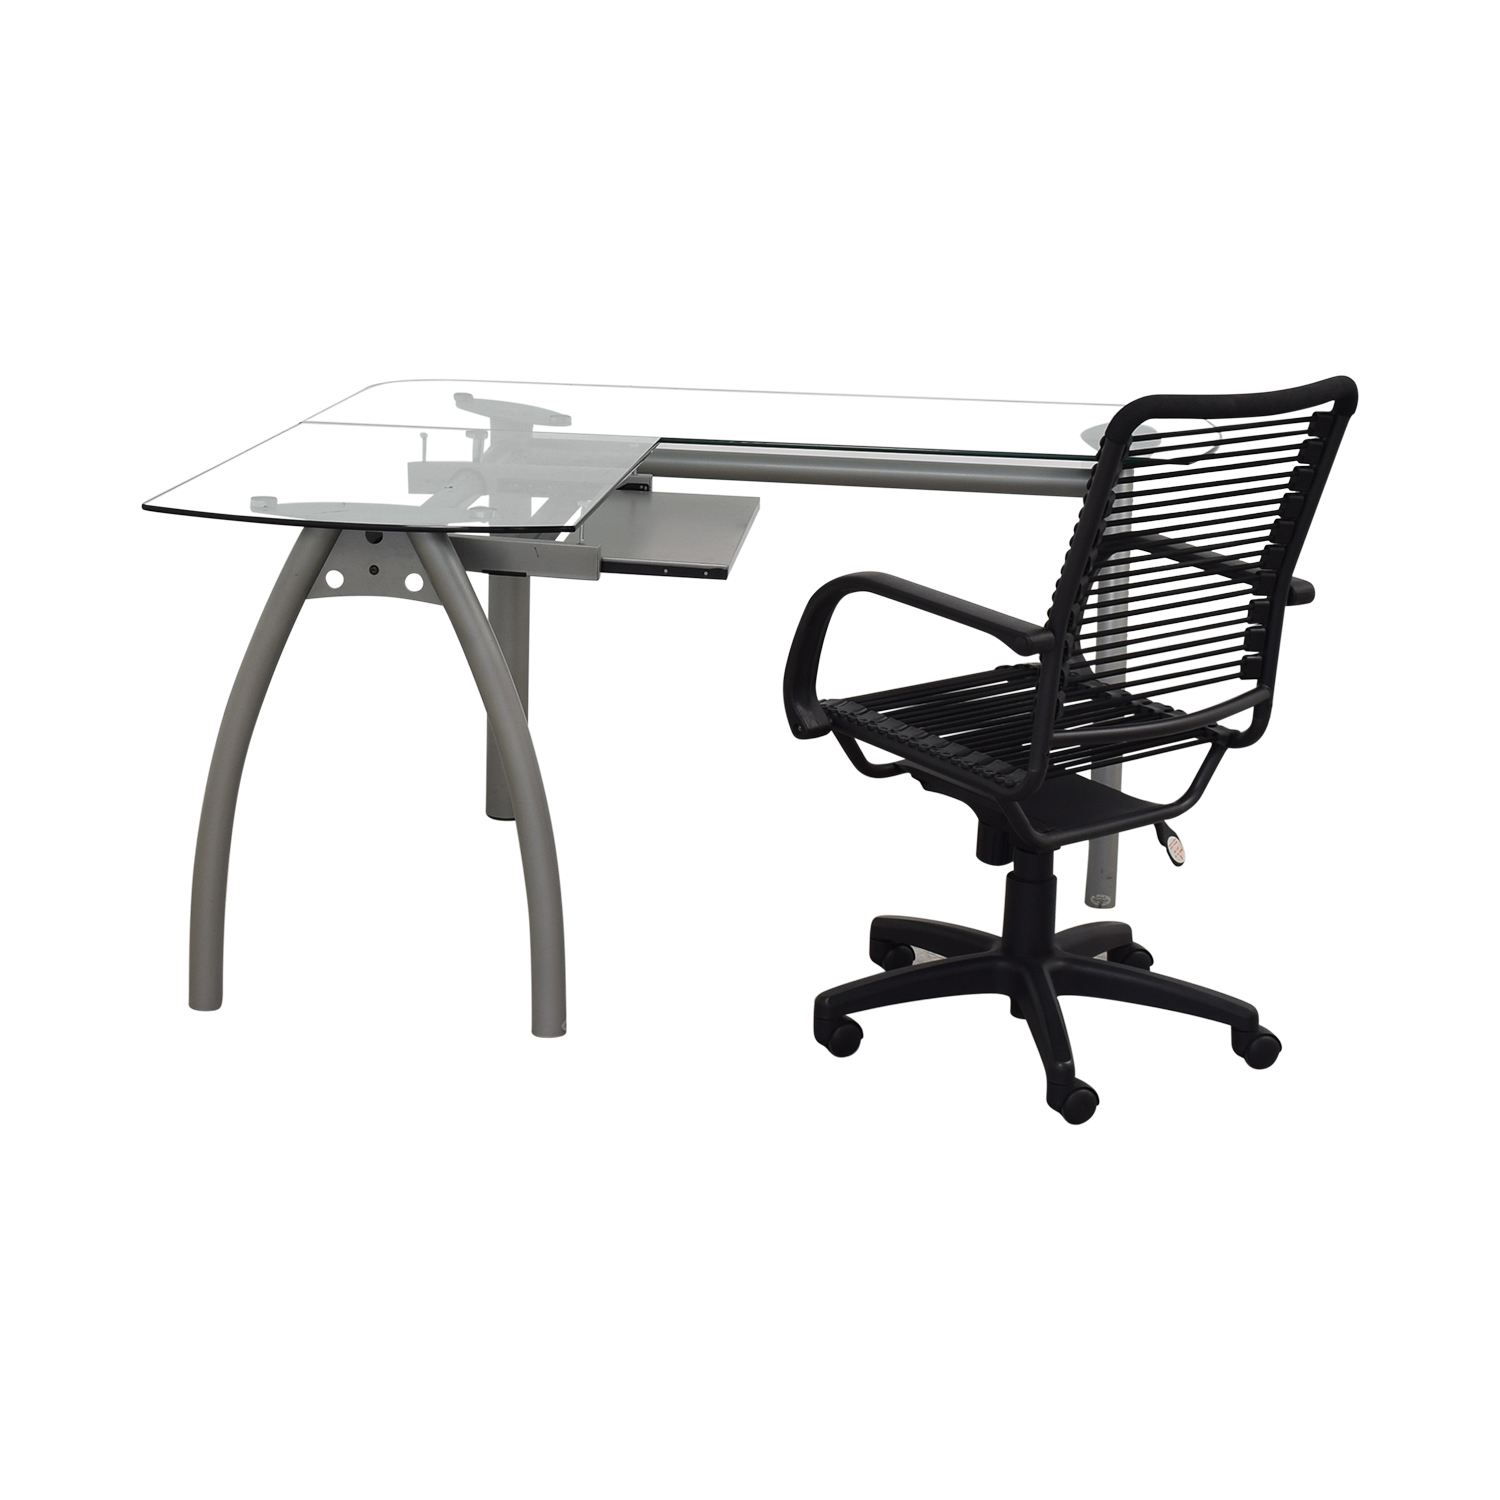 L-Shaped Glass and Metal Desk with Chair grey base, glass top